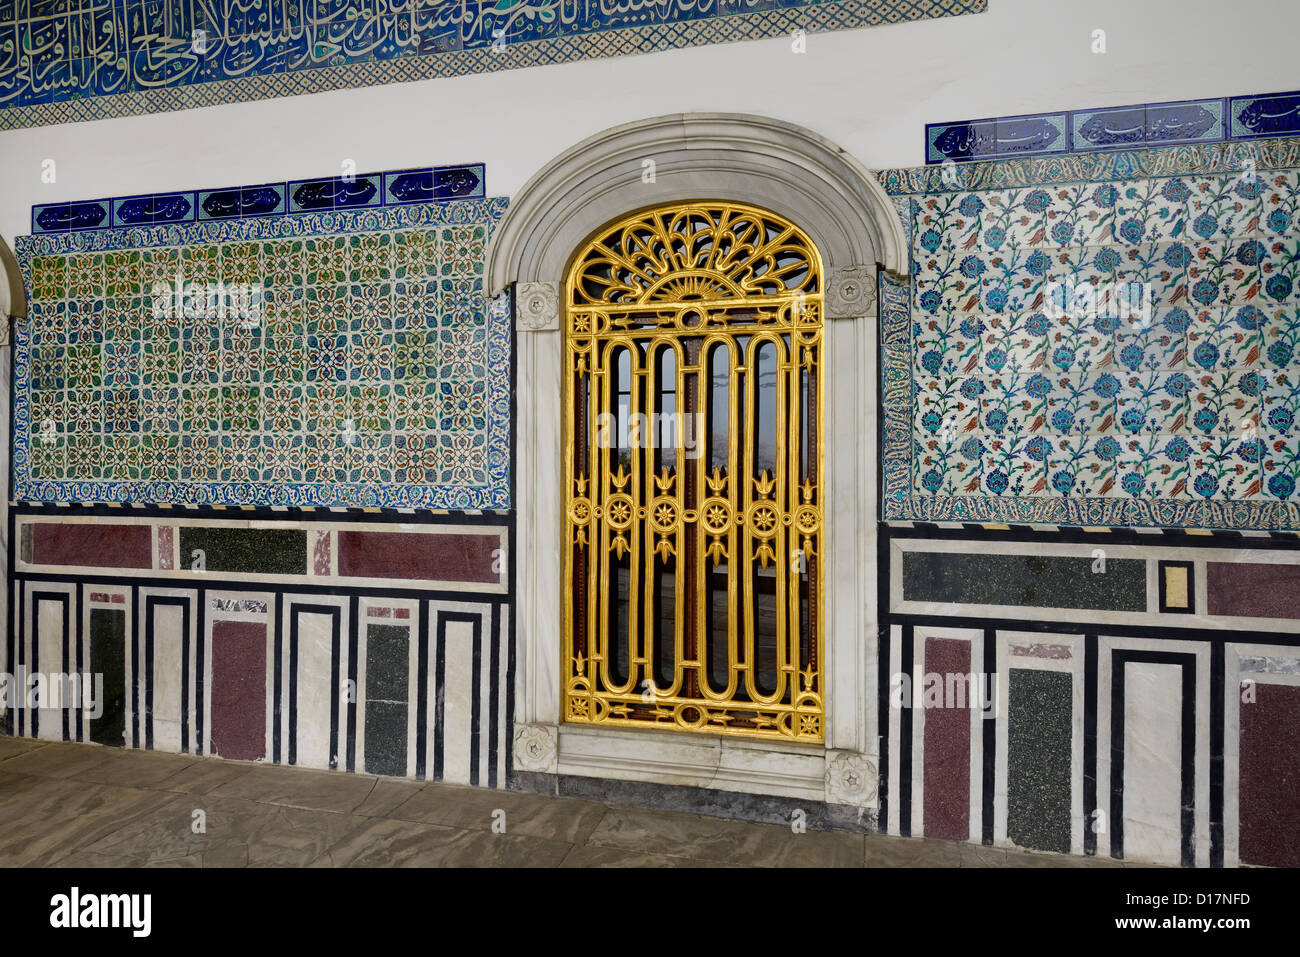 Window and tiles outside the Pavilion of the Blessed Mantle Topkapi Palace Istanbul Turkey - Stock Image